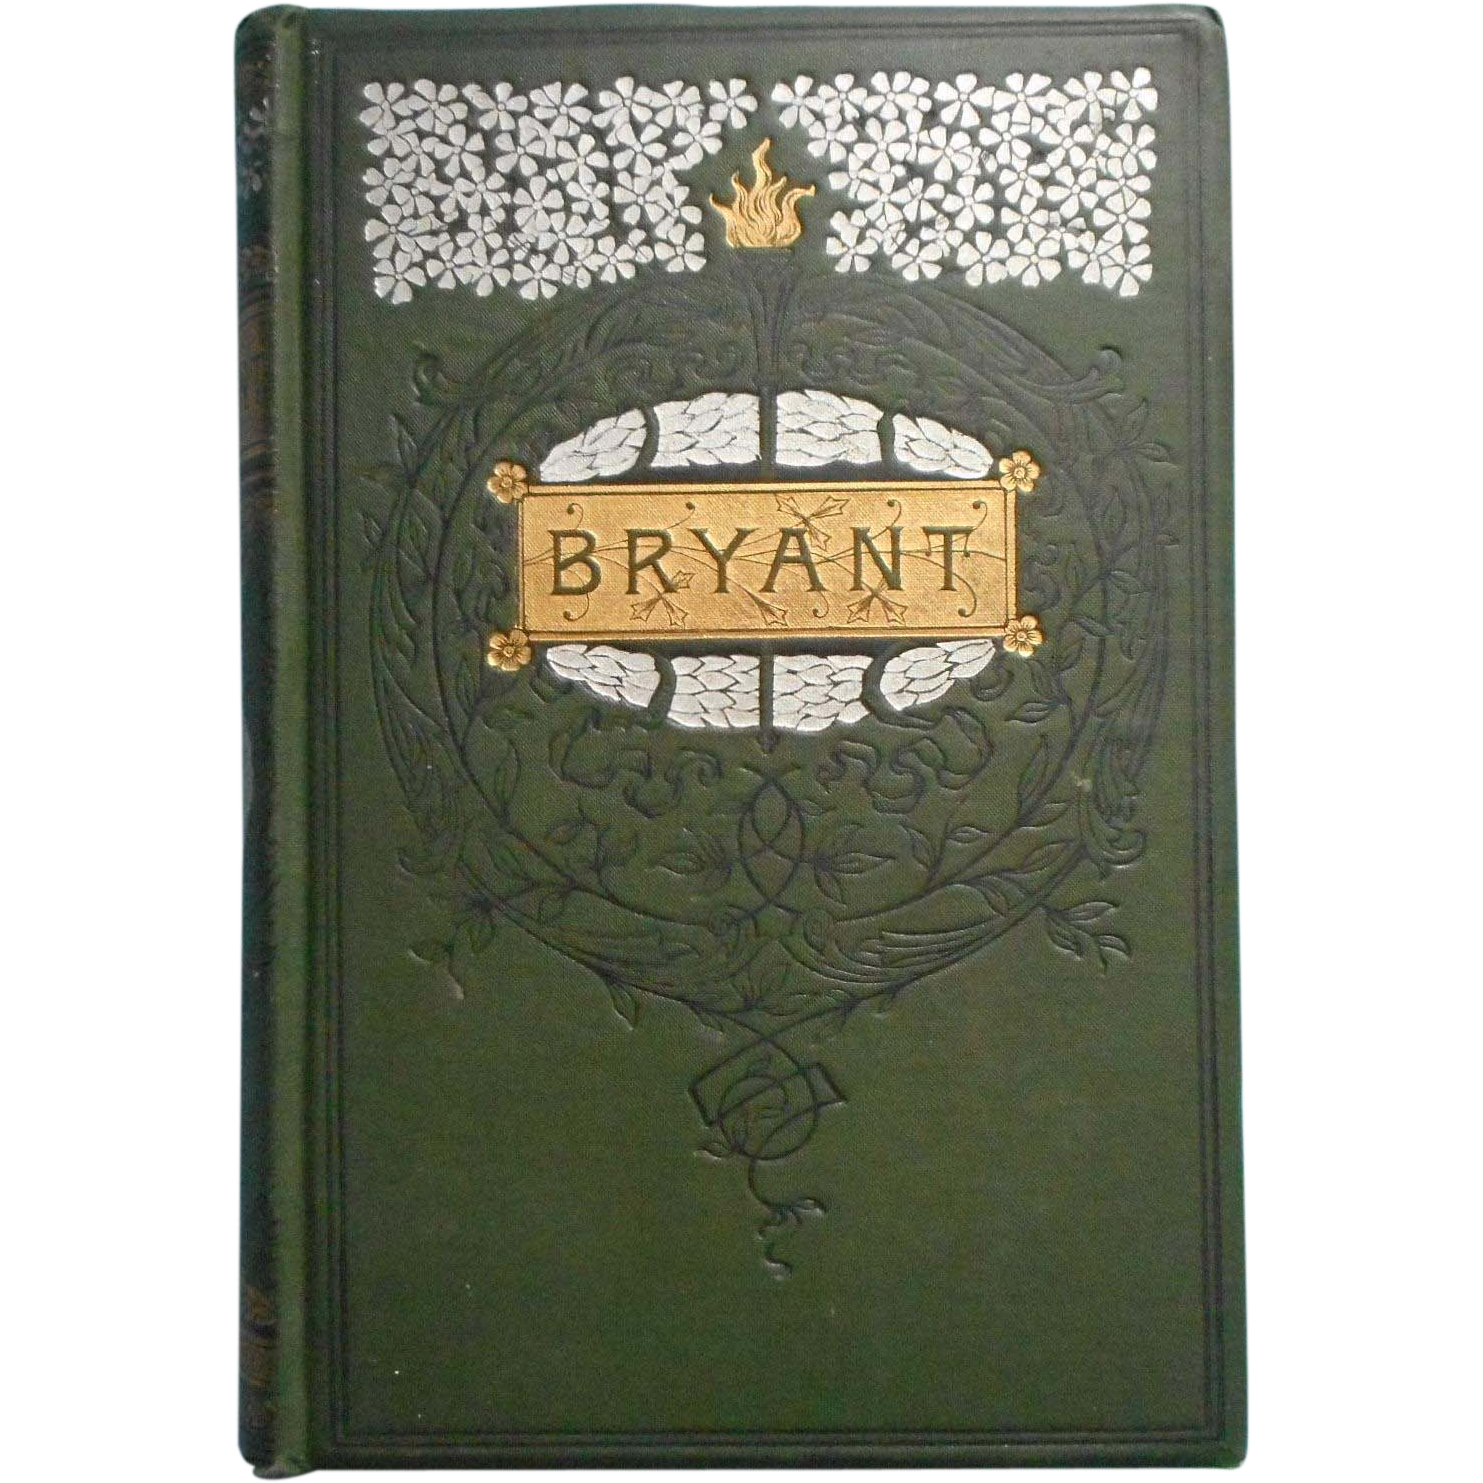 Beautiful Poetry Book Covers : Antique poetry book william cullen bryant beautiful cover